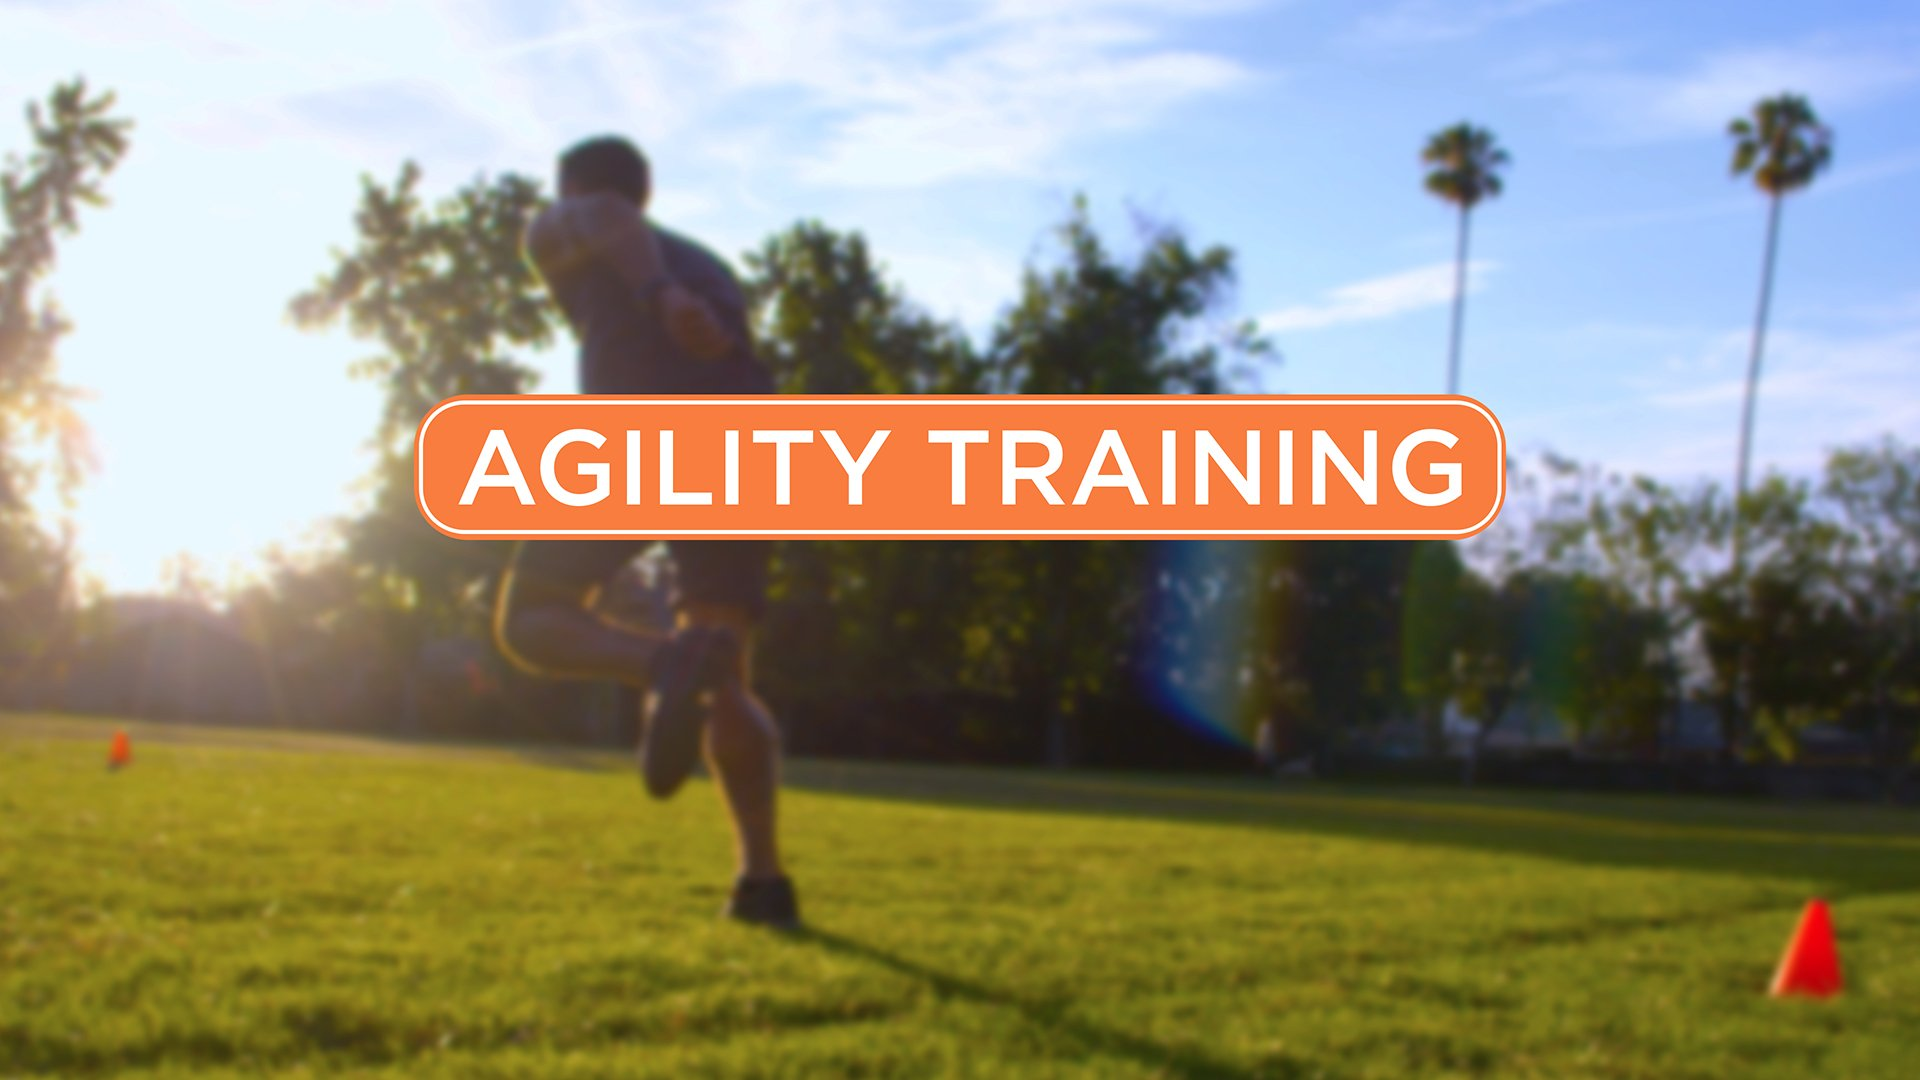 4 week Agility training program